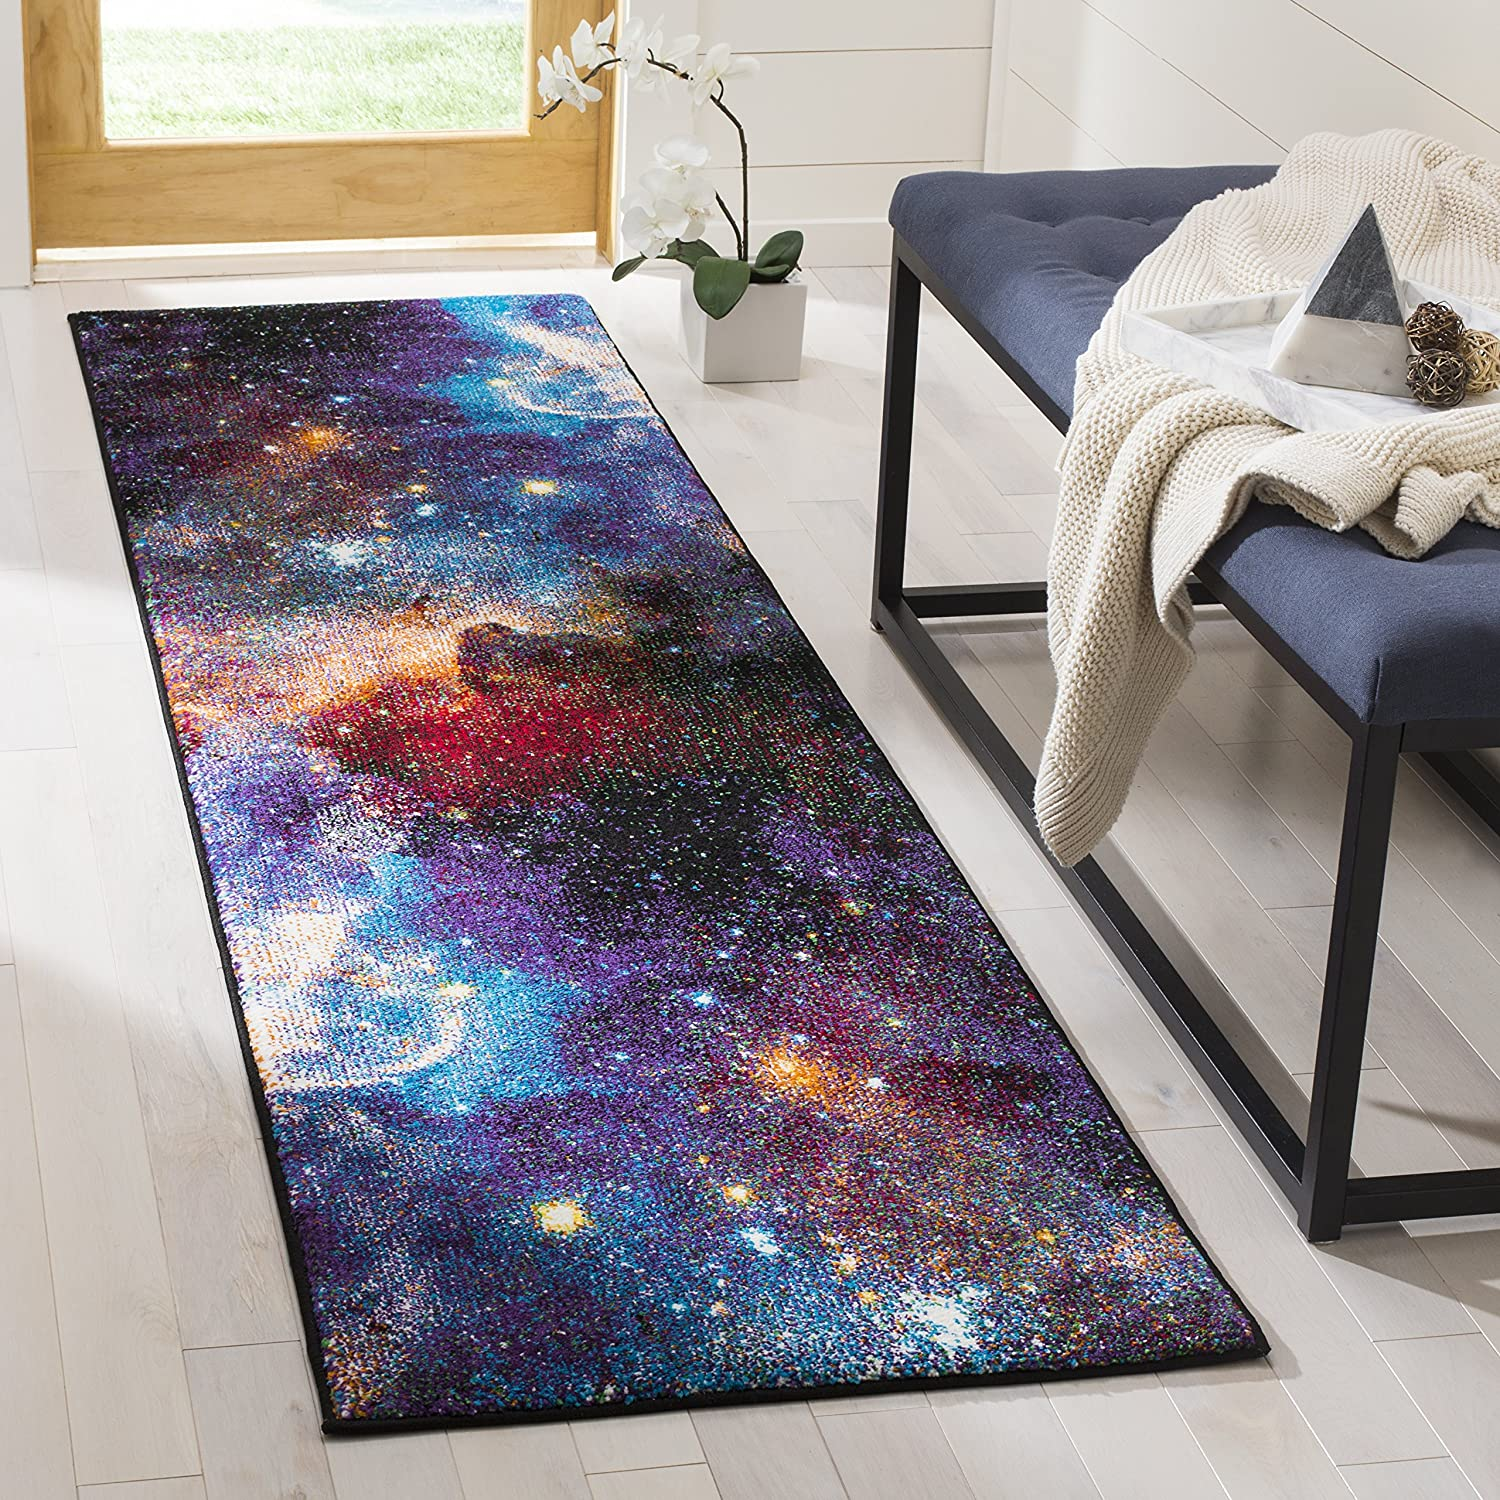 Amazon Com Safavieh Galaxy Collection Gal109p Abstract Non Shedding Stain Resistant Living Room Bedroom Area Rug 9 X 12 Purple Multi Furniture Decor